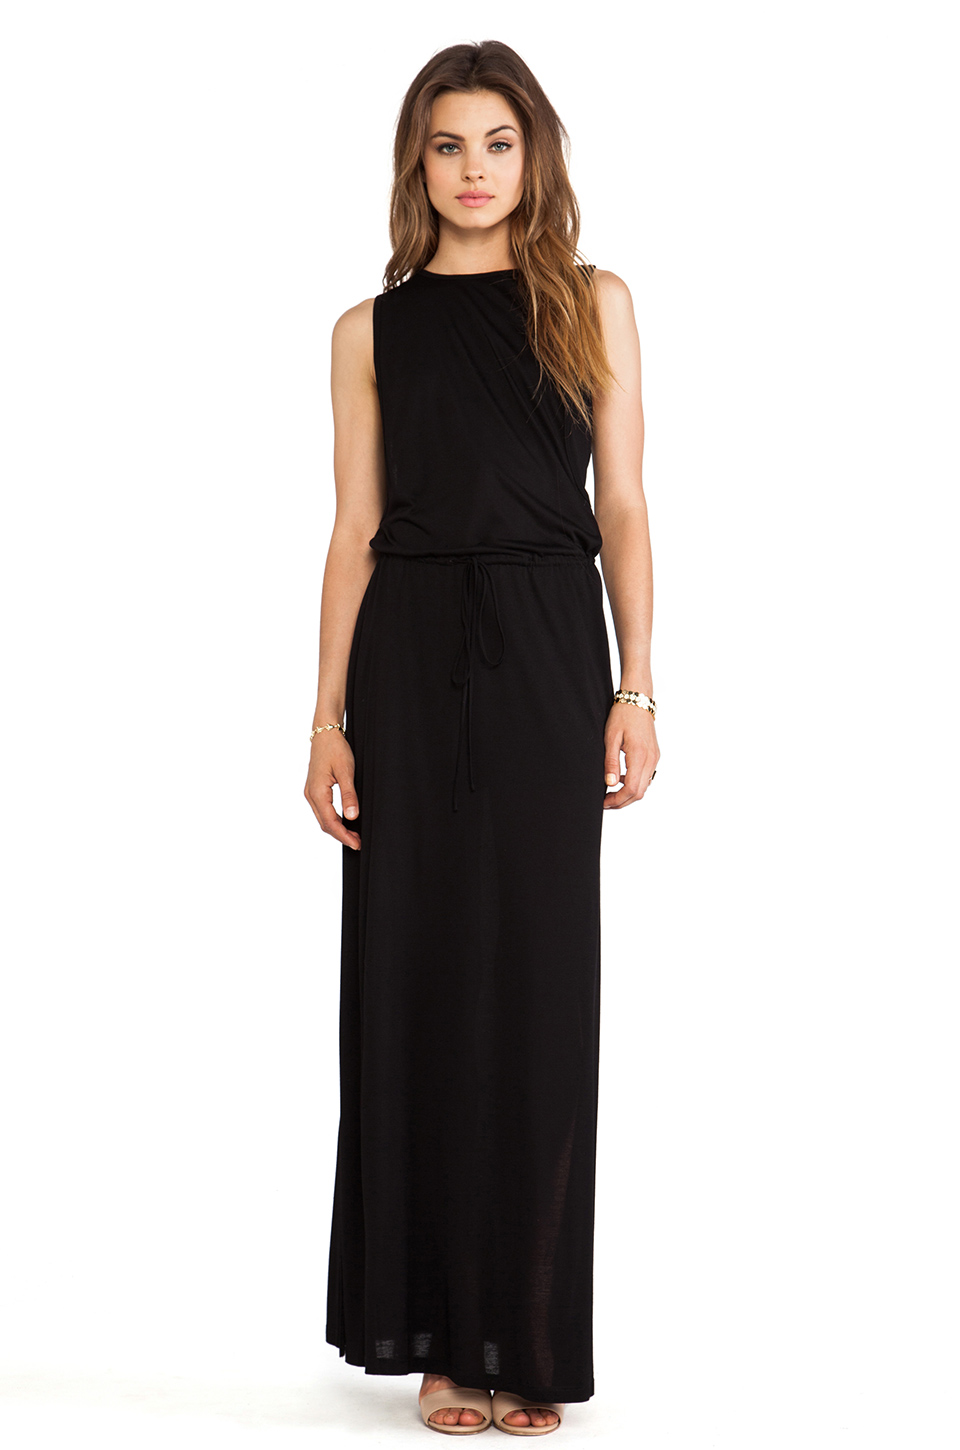 A.L.C. Brook Dress in Black from REVOLVEclothing.com